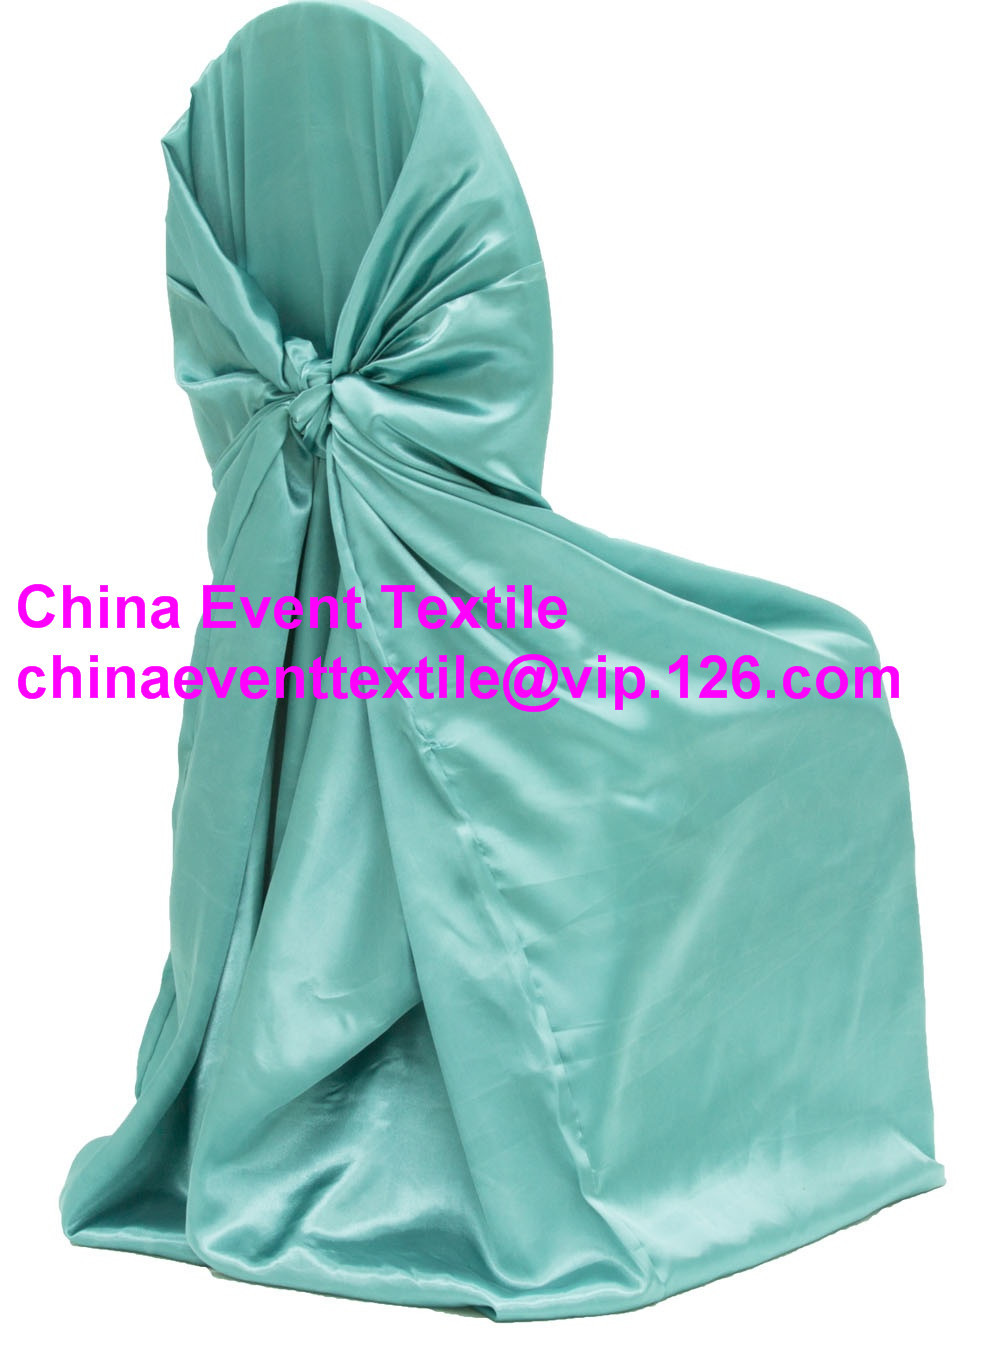 Folding chair covers wholesale under 1 - 50pcs 95 Tiffany Blue Satin Back Self Tie Chair Cover Universal Satin Chair Cover